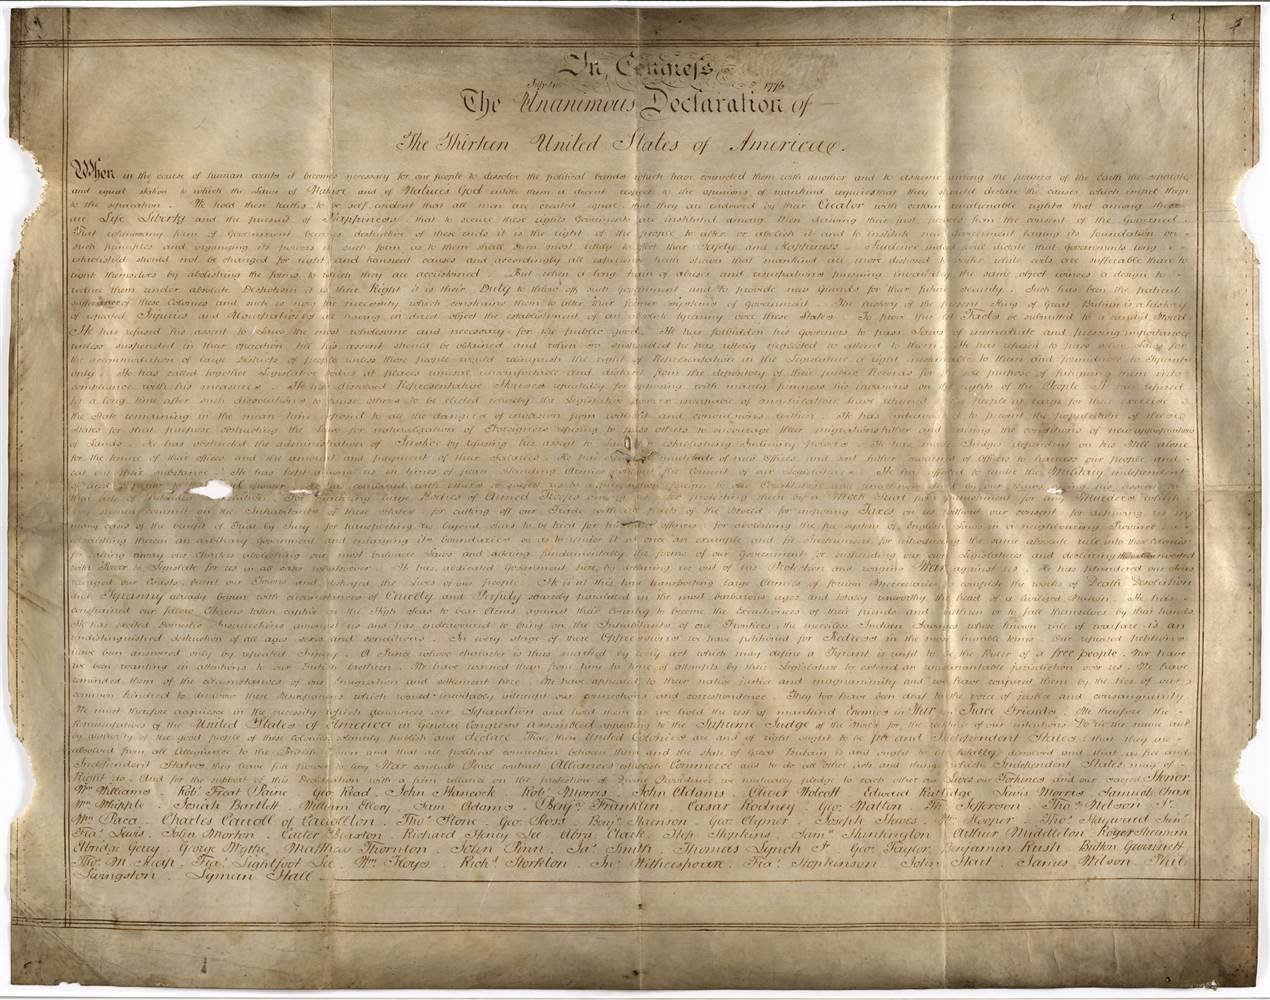 The Sussex Declaration. West Sussex Record Office